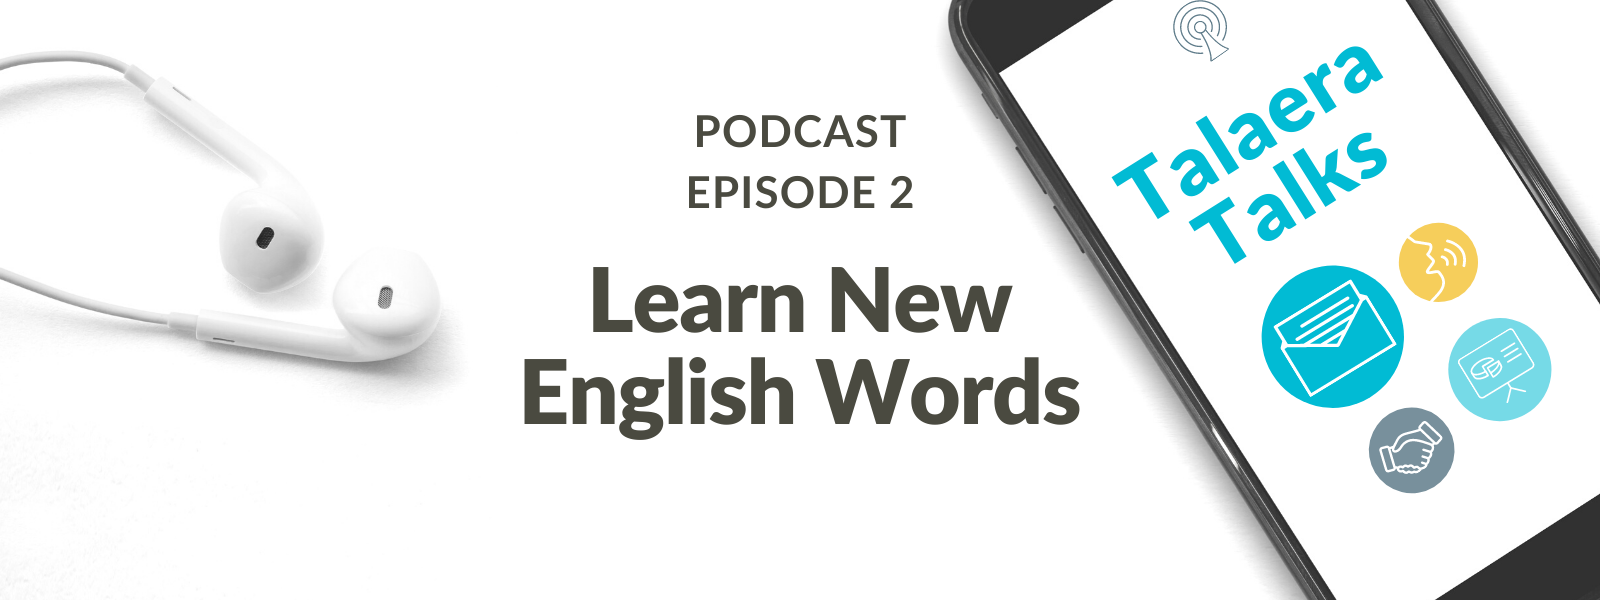 How To Remember New English Words With 3 Easy Tricks [Podcast]